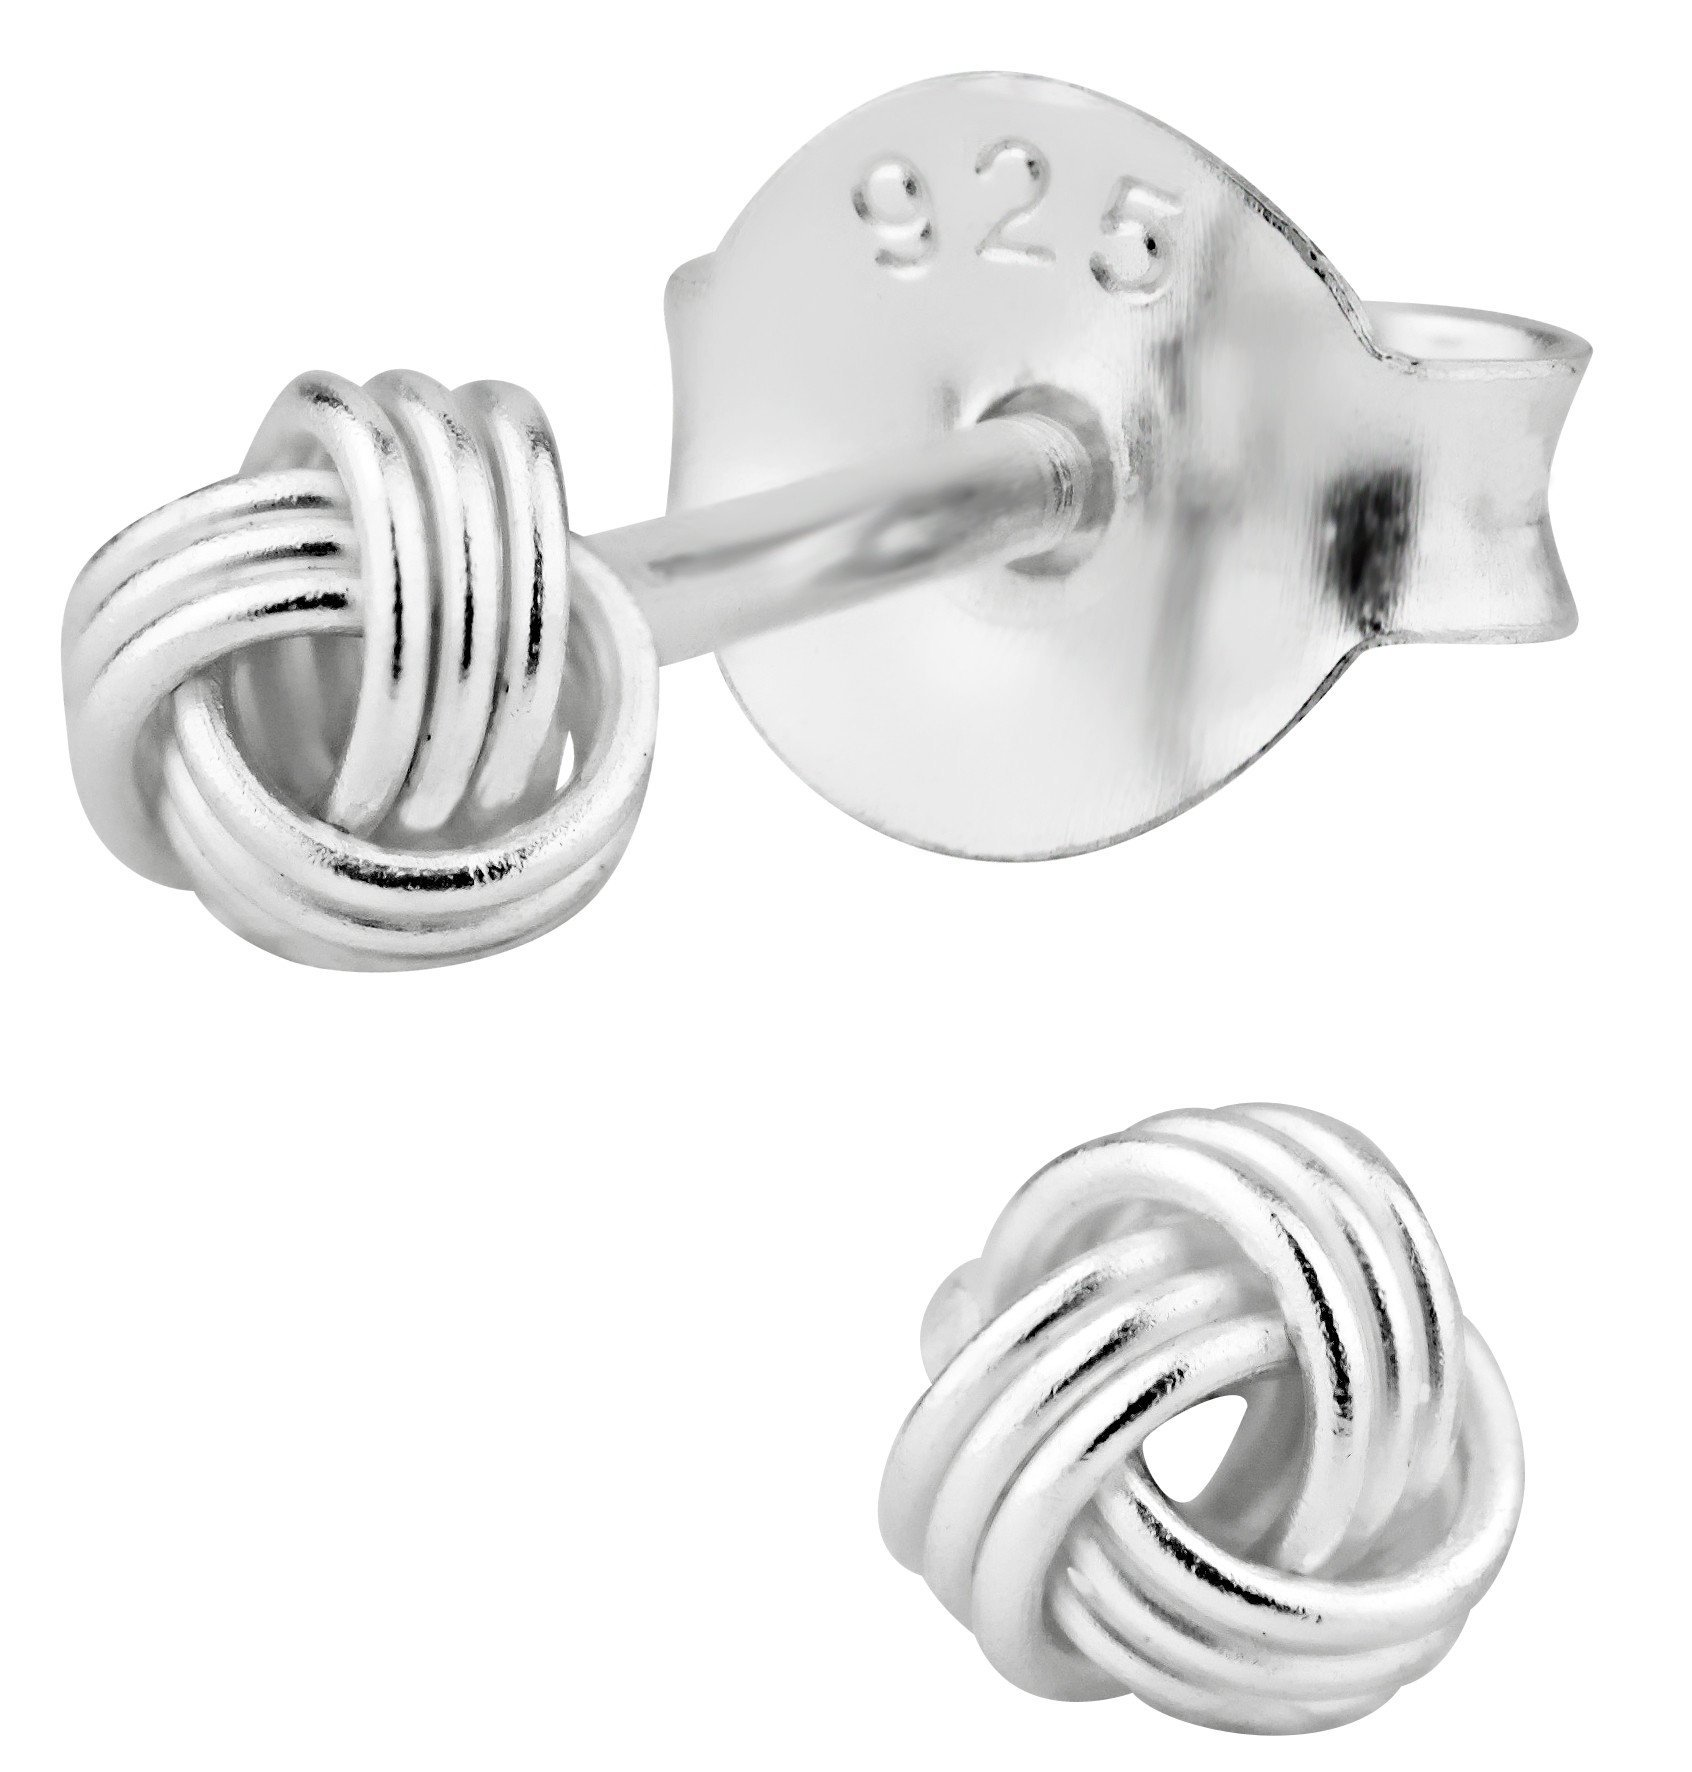 Hypoallergenic Sterling Silver Small Love Knot Stud Earrings for Kids (Nickel Free) by Penny & Piper (Image #1)